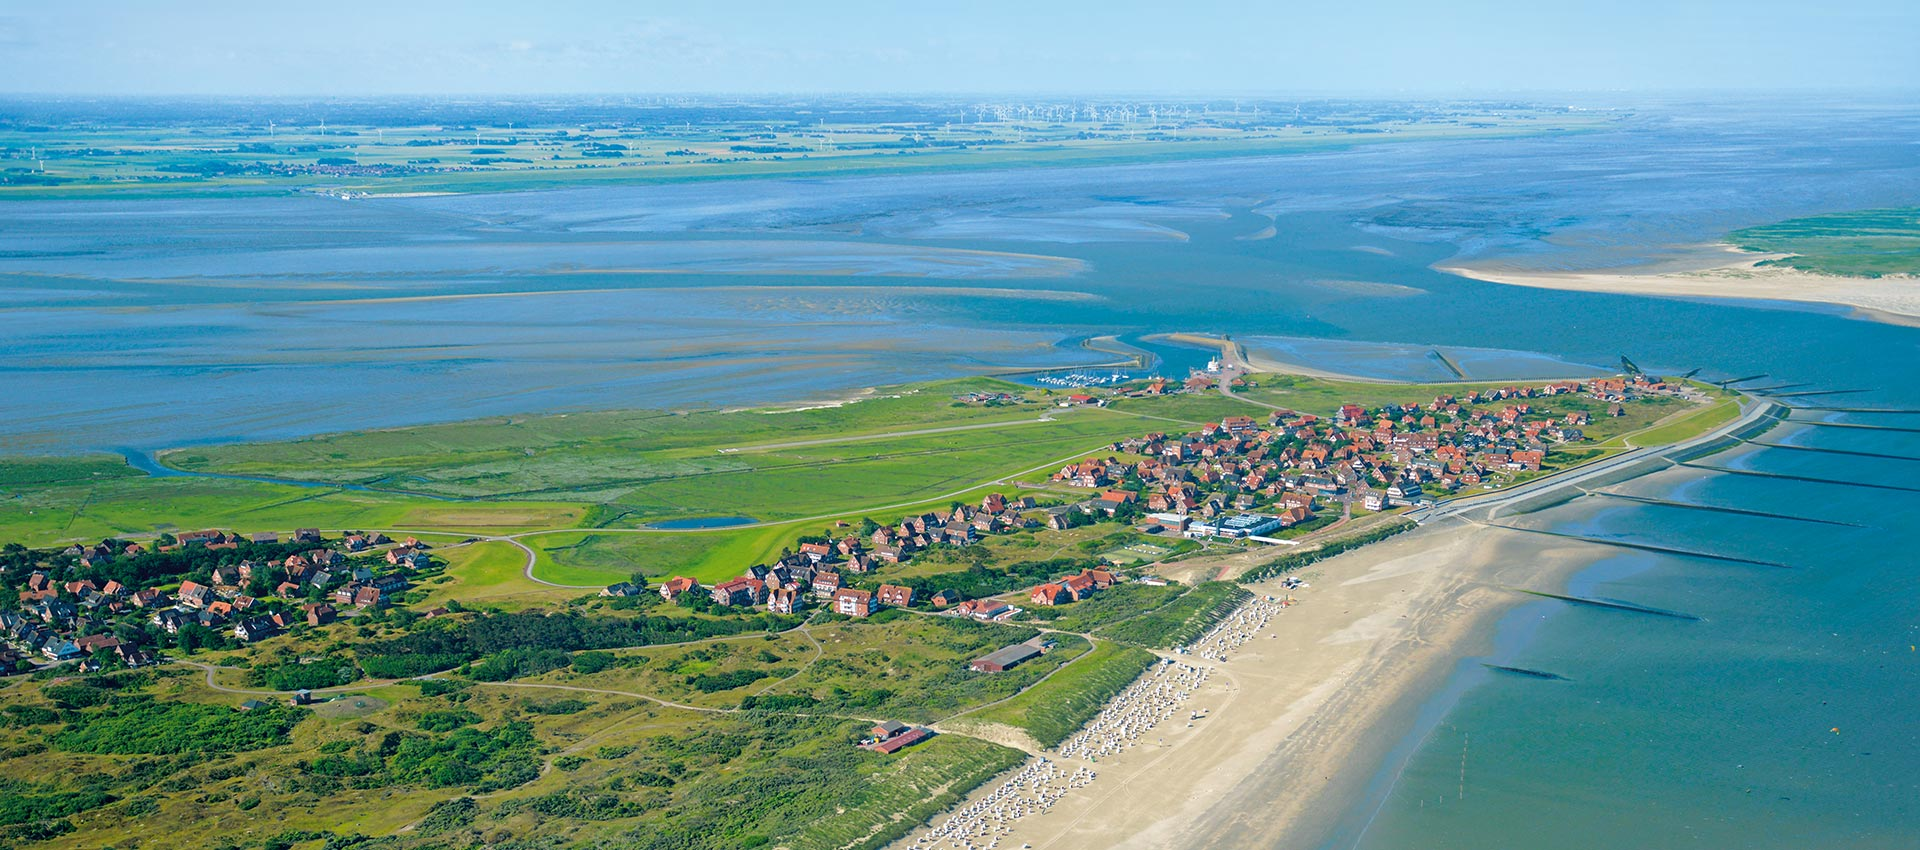 Hotels auf Baltrum